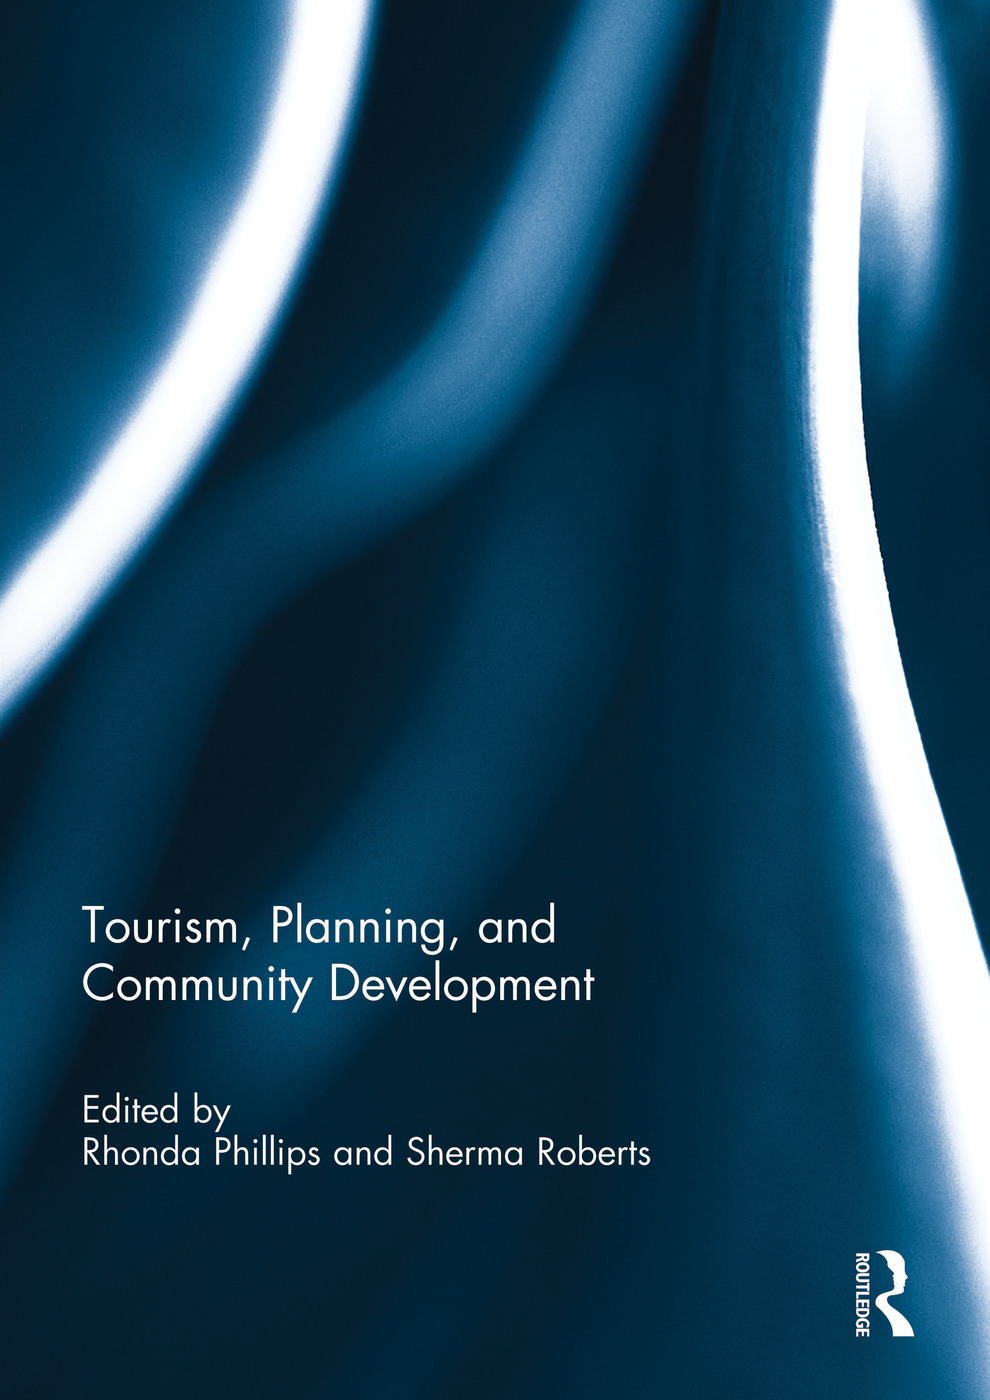 Tourism, Planning, and Community Development